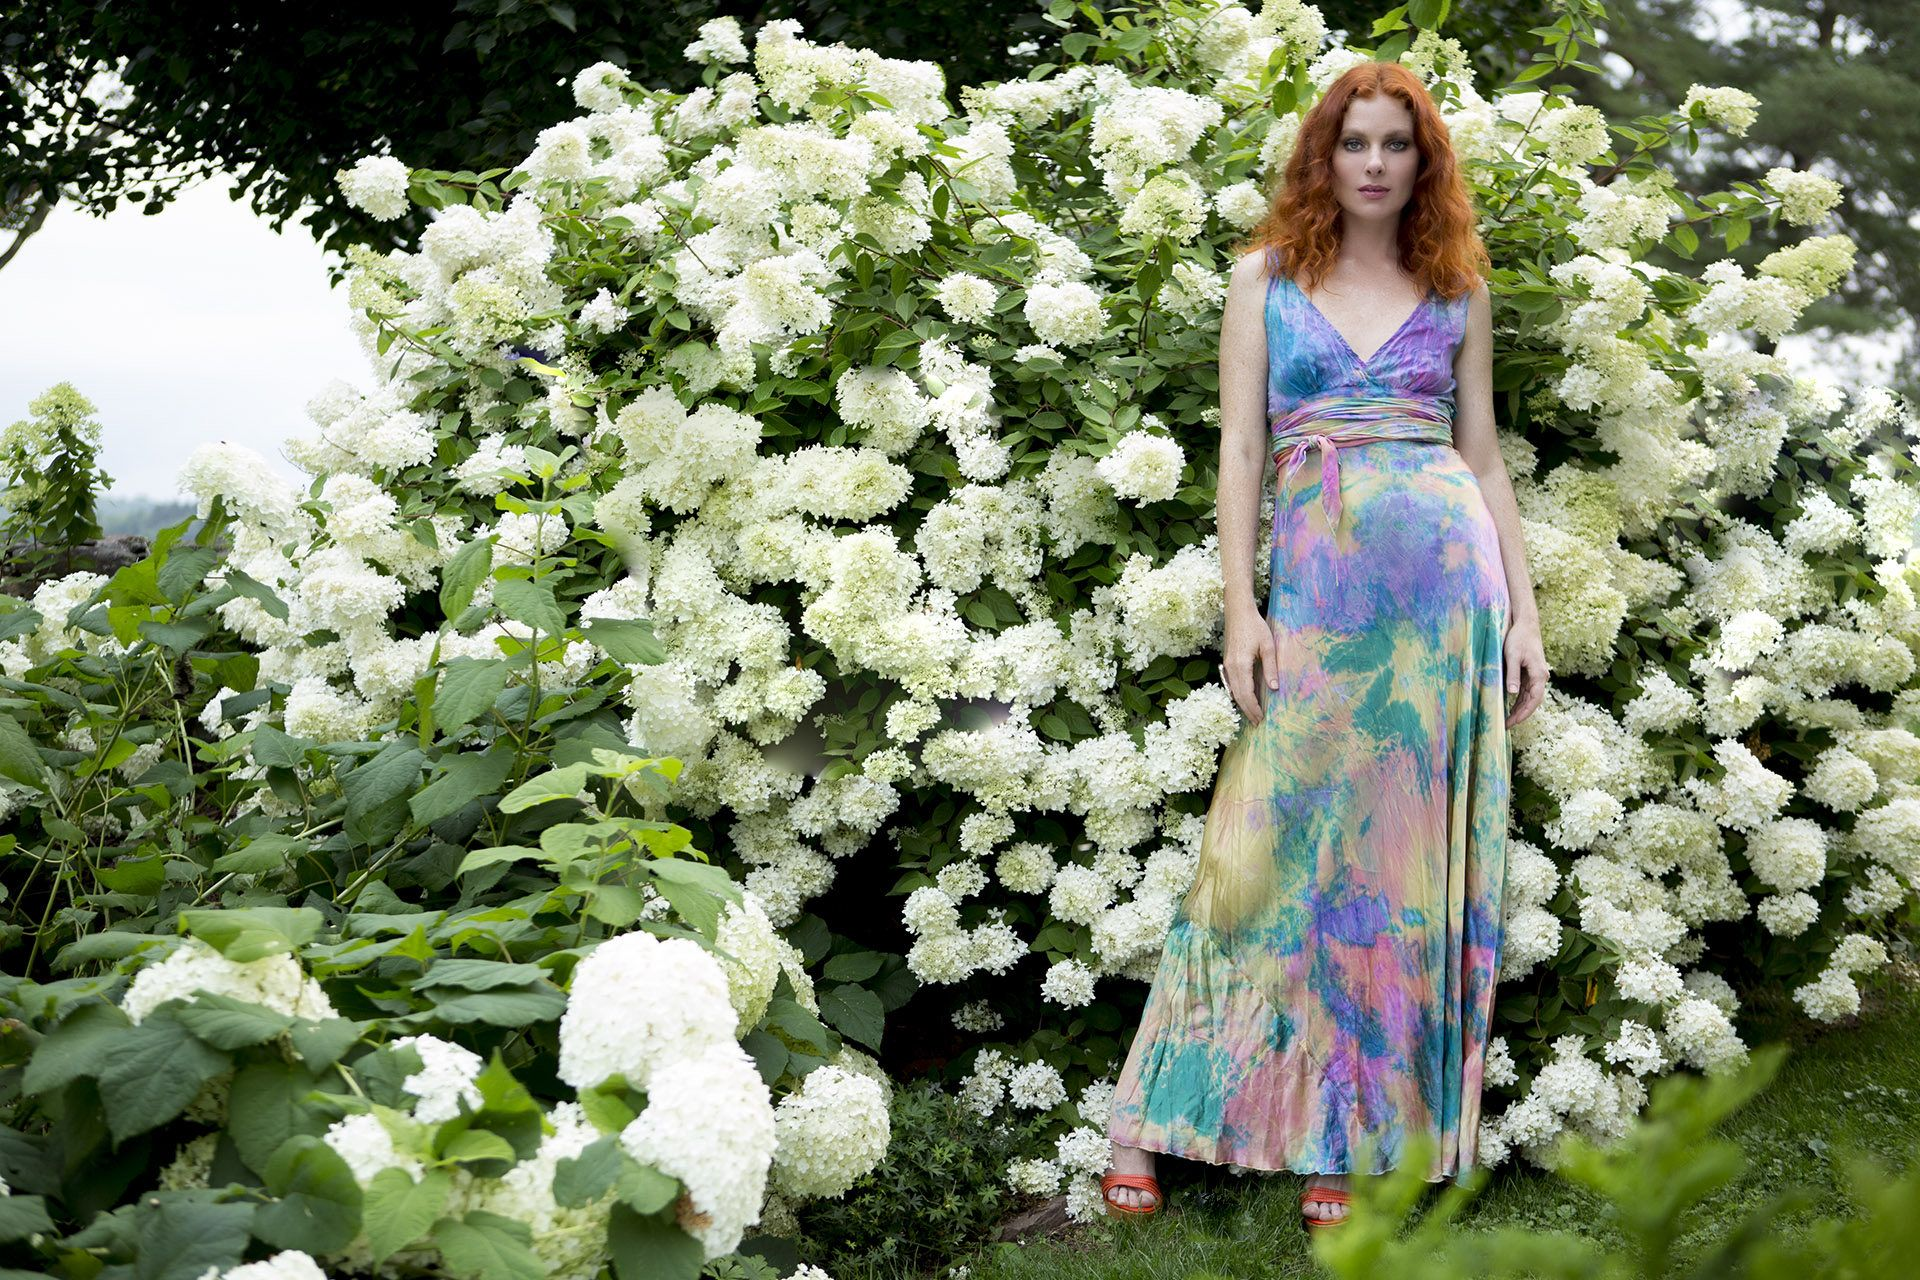 Mother of the bride beach dresses for weddings  rainbow dyed silk wedding dress boho chic bridal mother of the bride